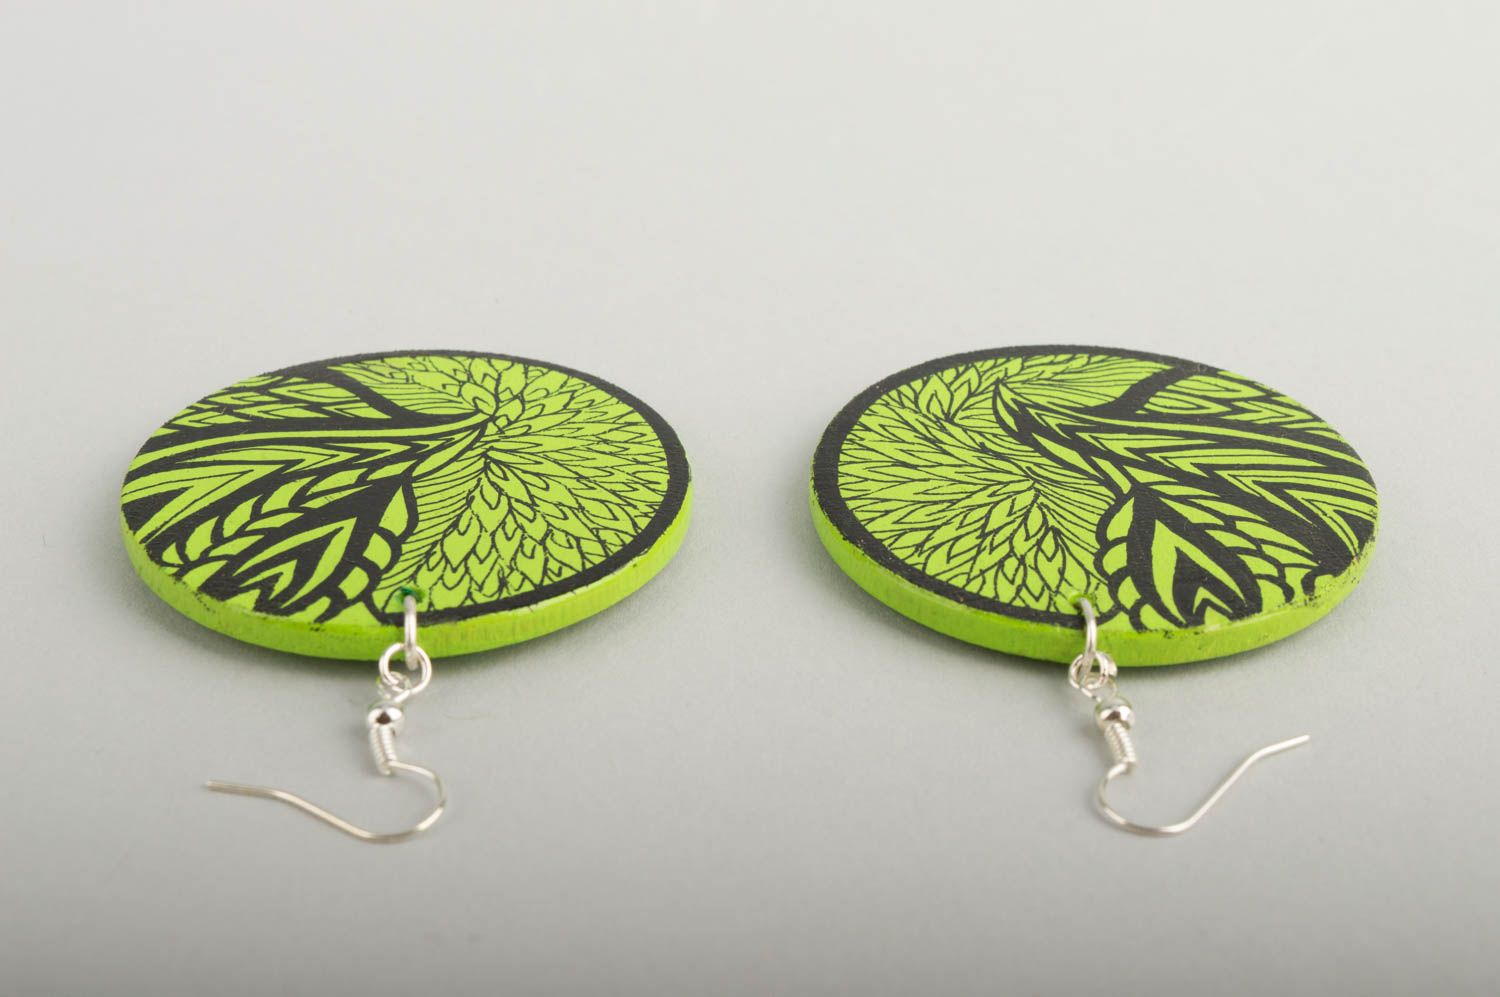 Fashion jewelry handmade earrings wooden jewelry designer accessories gift ideas photo 5